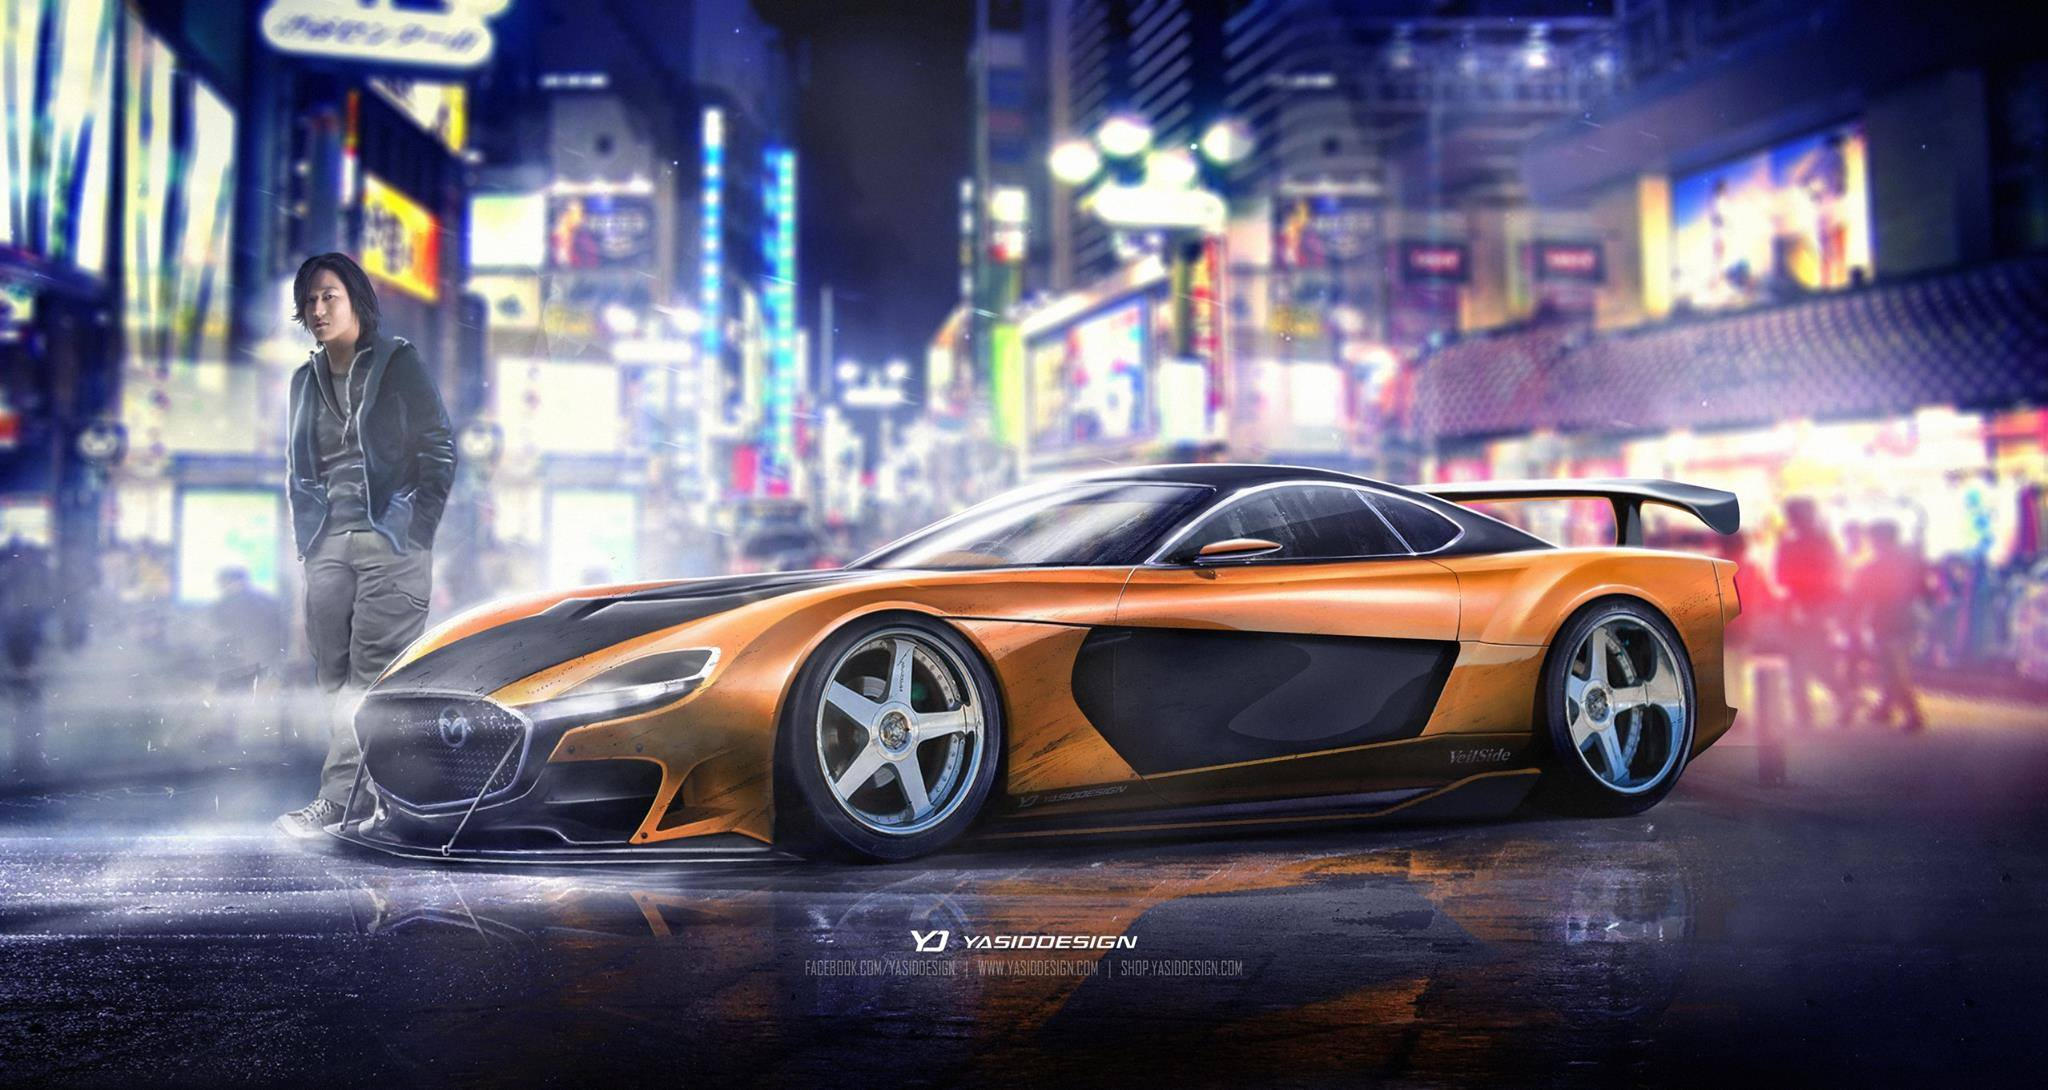 What do you think about Han's Mazda RX7 Veilside Fortune 2020?